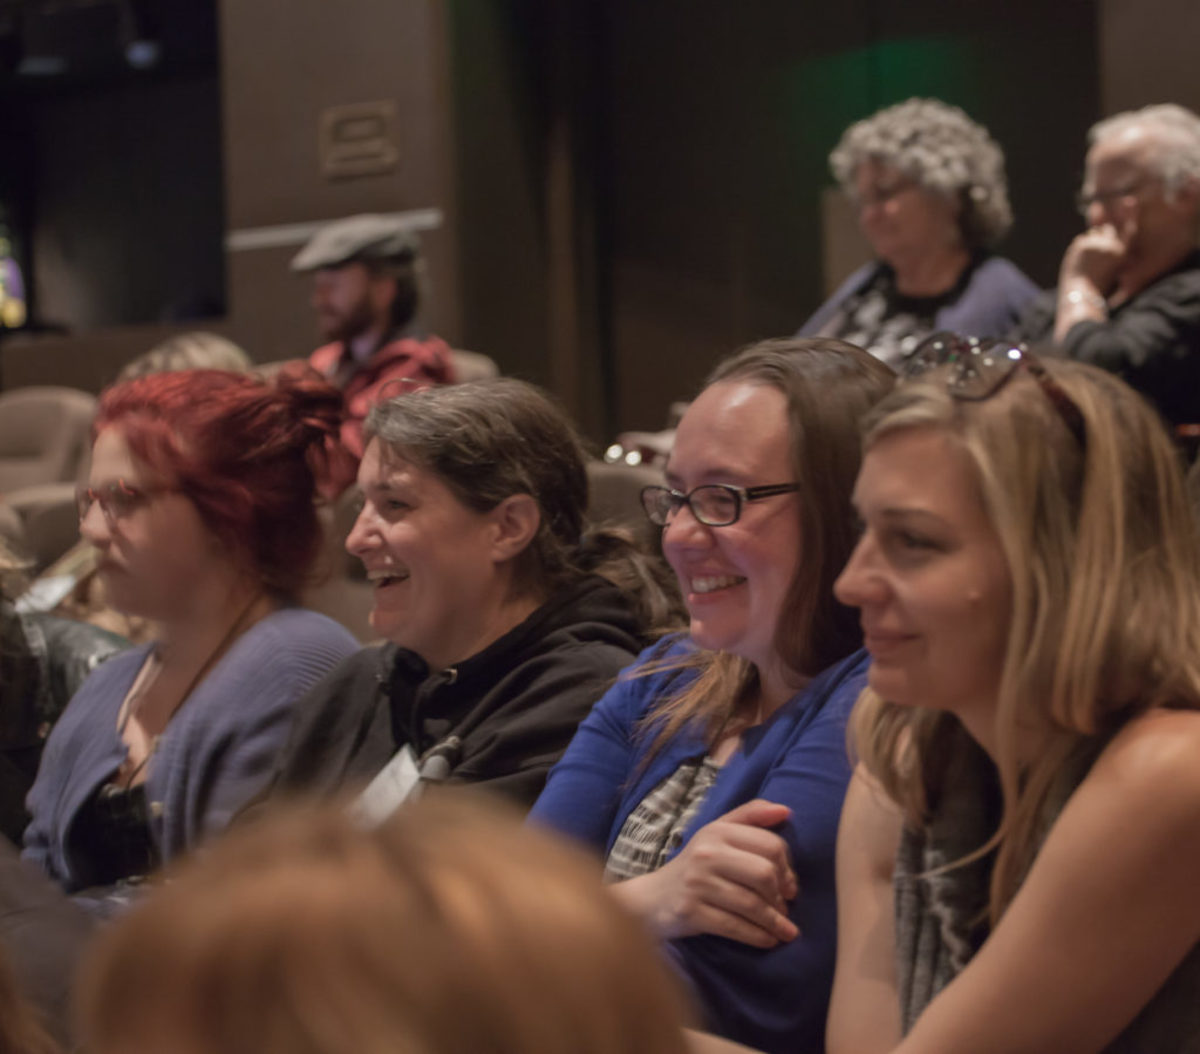 For 33 years, The Central Coast Writers Conference has been an essential annual destination for writers, teachers, students, editors, and publishers. Learn what makes it so special!